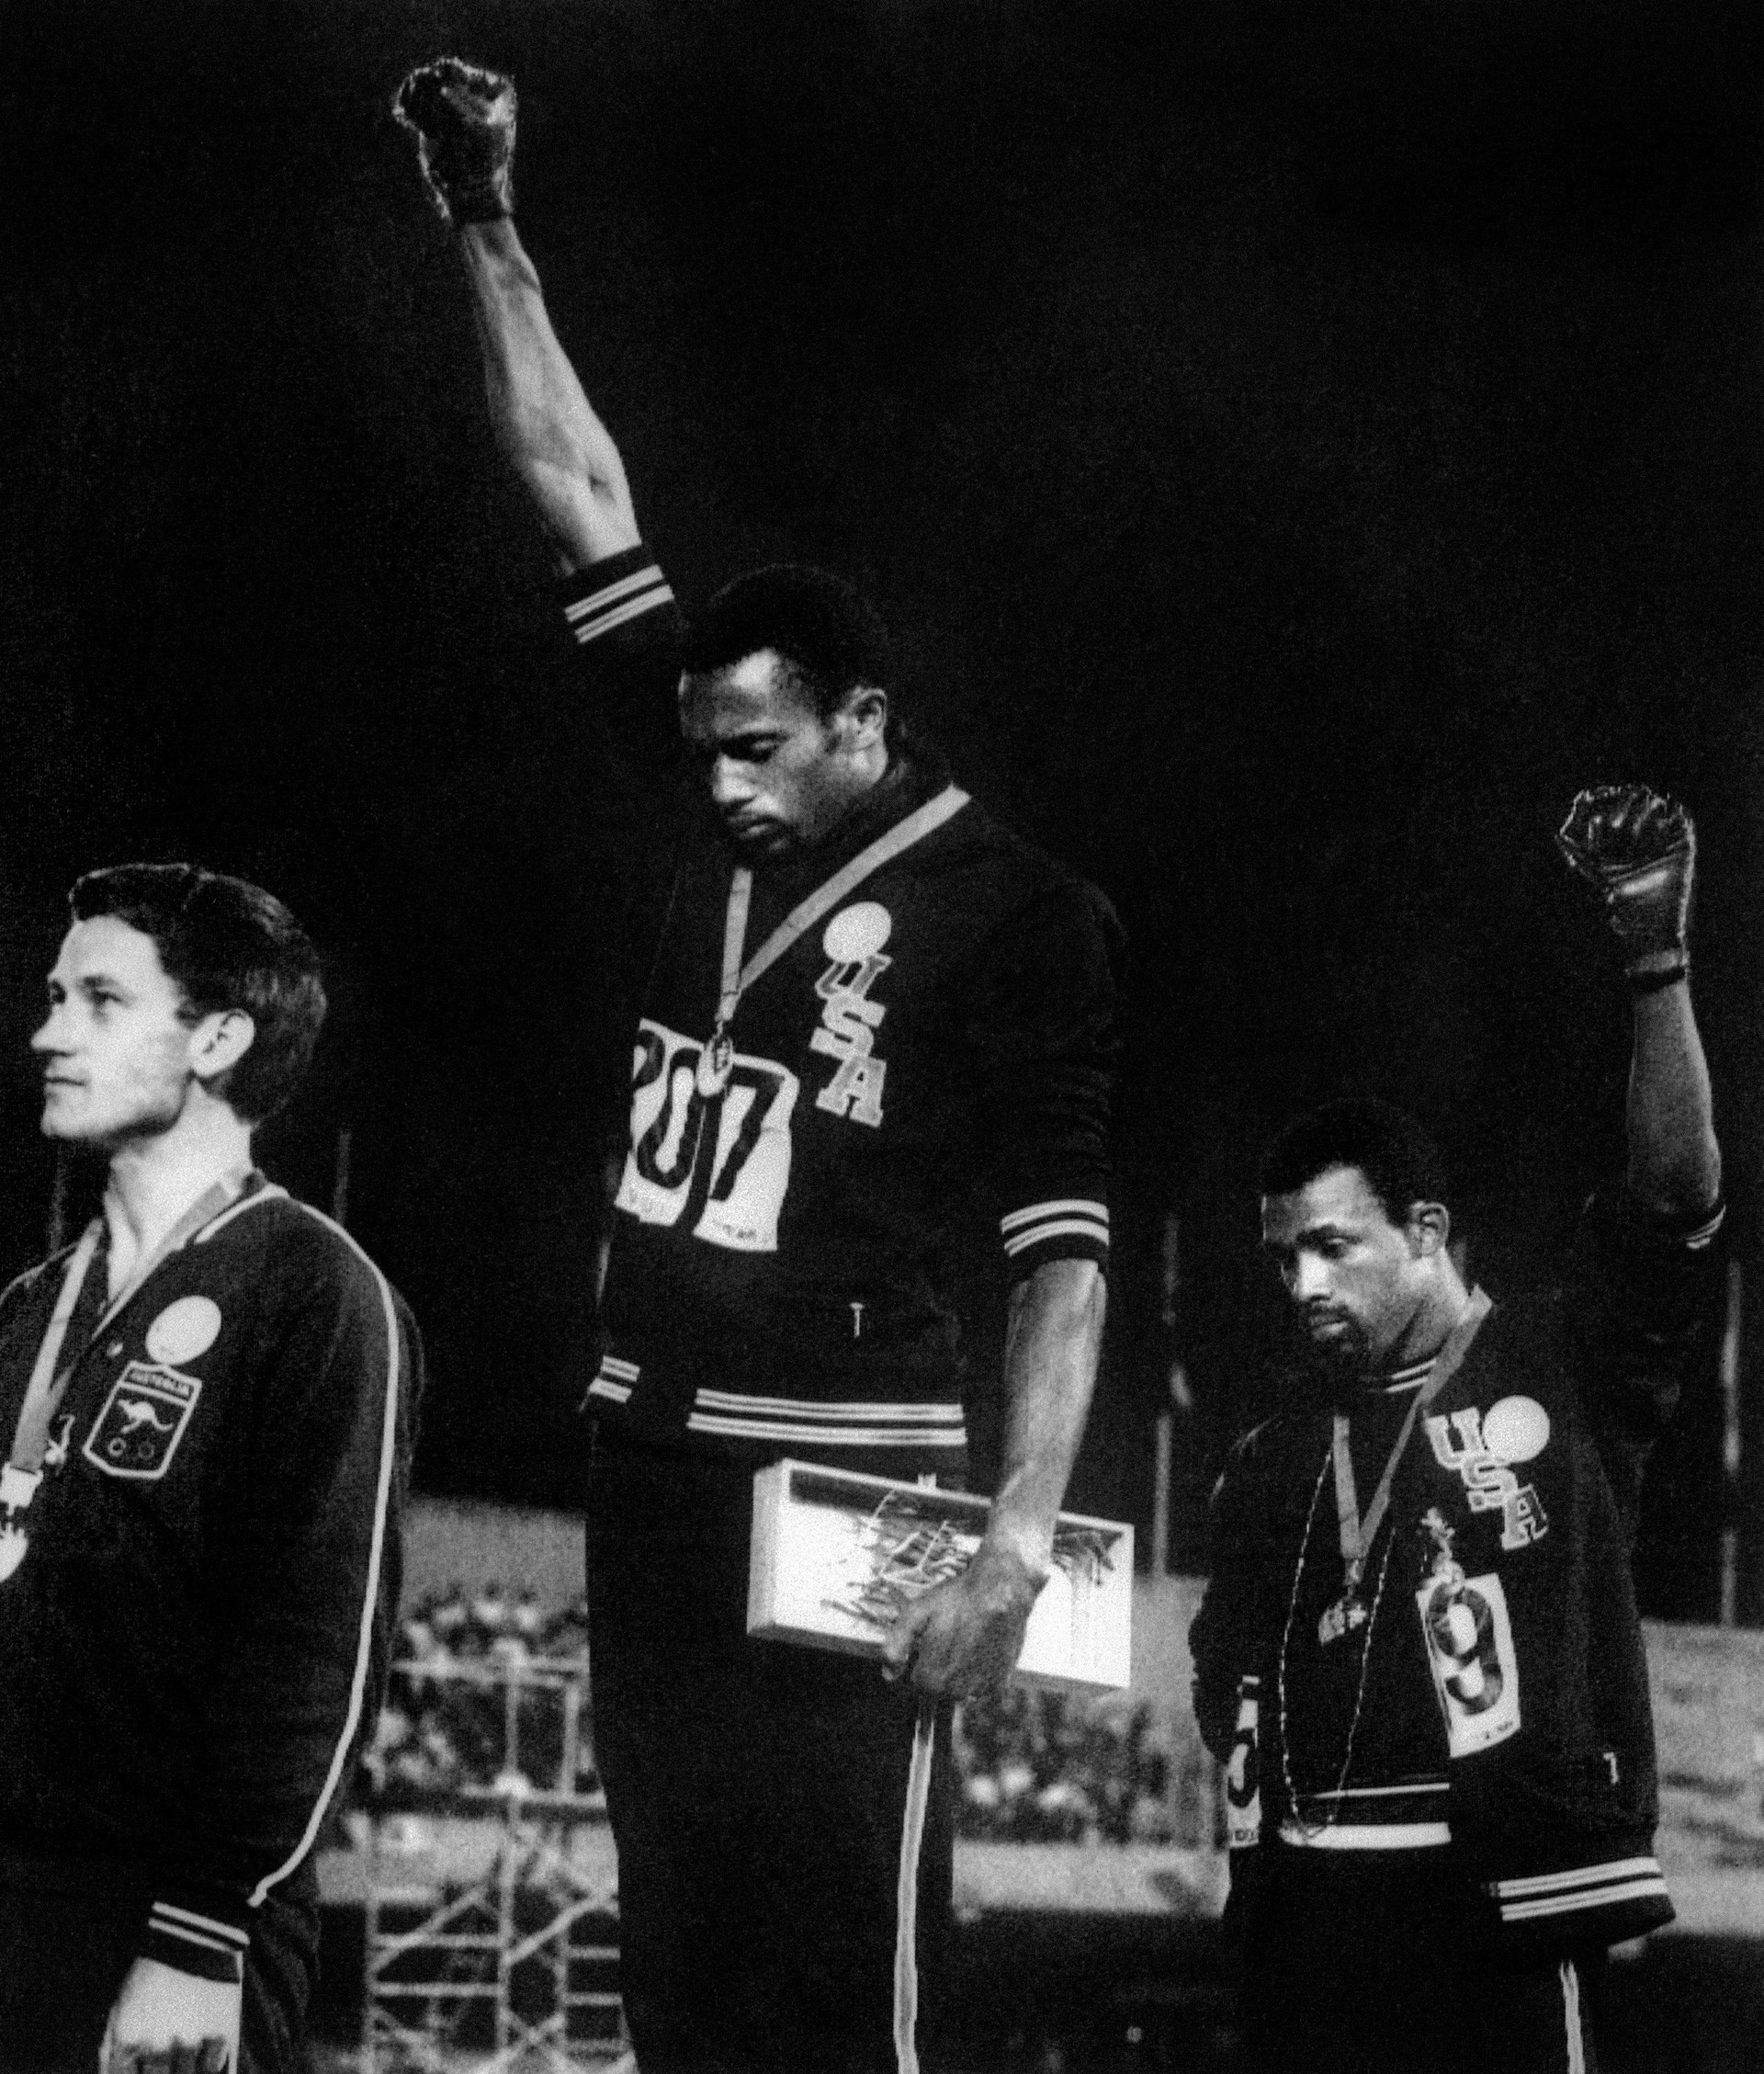 San Jose State University sprinter Tommie Smith, center, and John Carlos, right, raised their gloved fists on the awards podium at the 1968 Olympic Games in Mexico as a protest against racial oppression in America. Peter Norman of Australia, left, who took silver, wore an Olympic Project for Human Rights pin in solidarity.